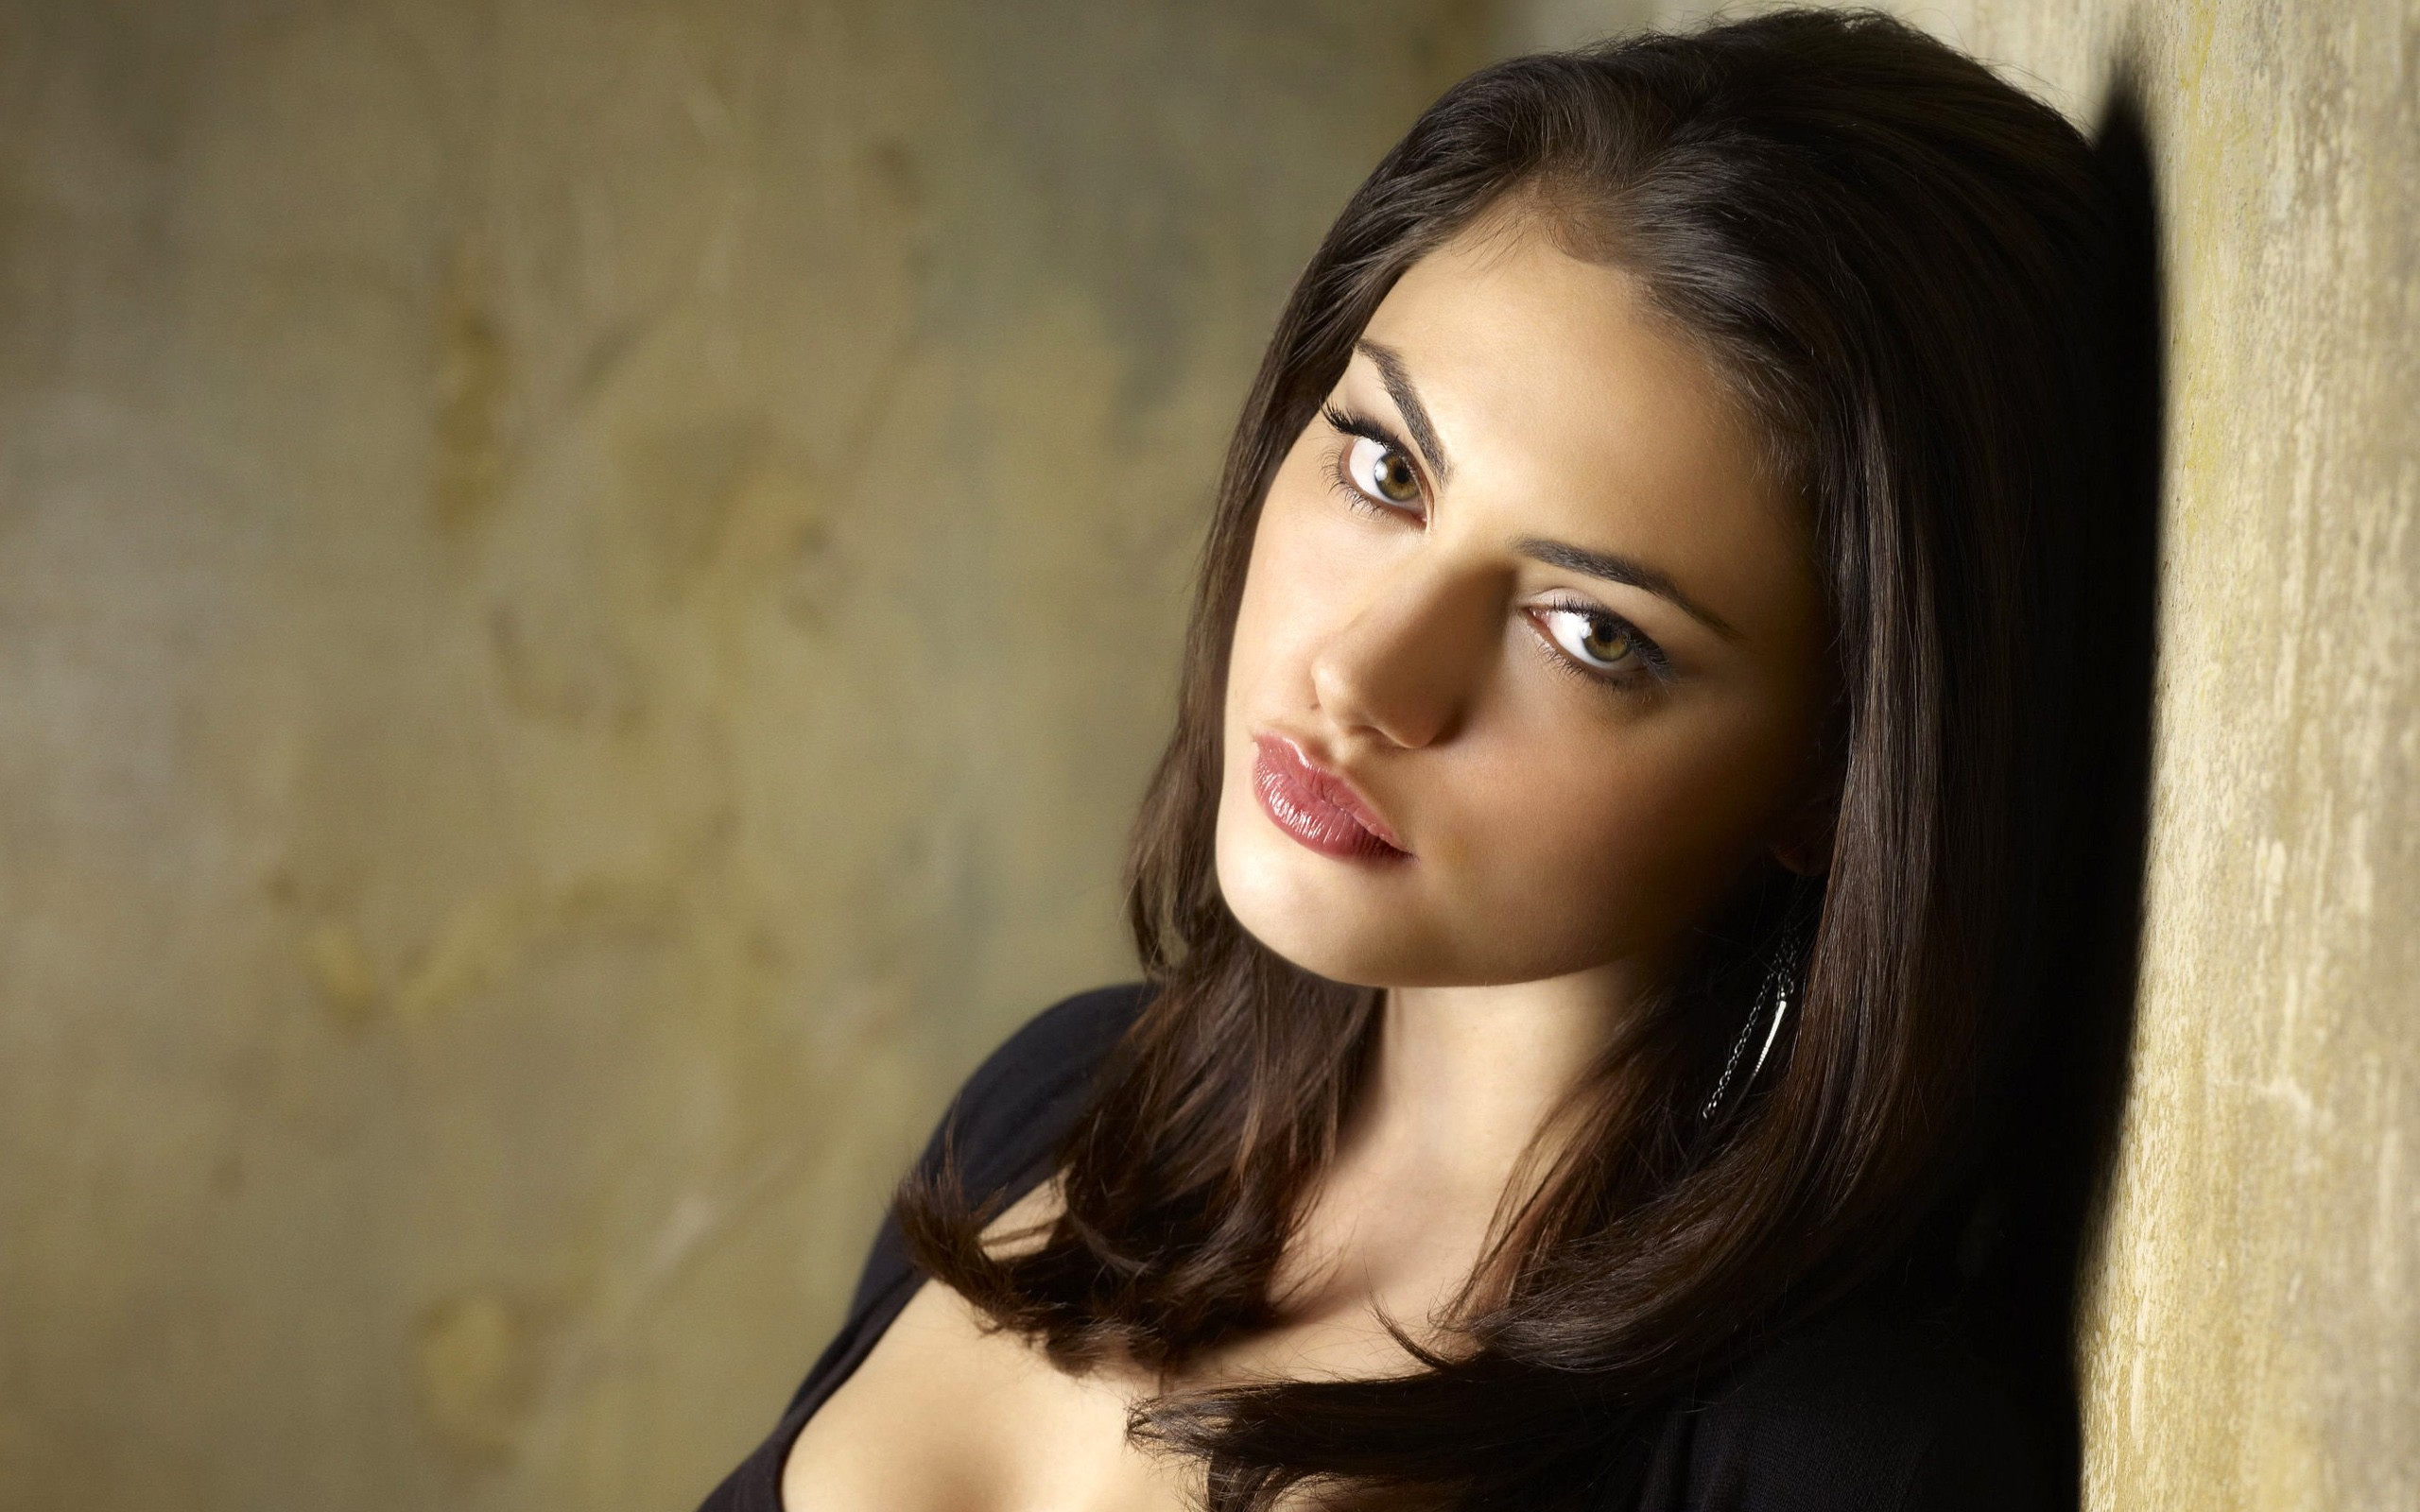 Phoebe Tonkin 3 Hd Celebrities 4k Wallpapers Images